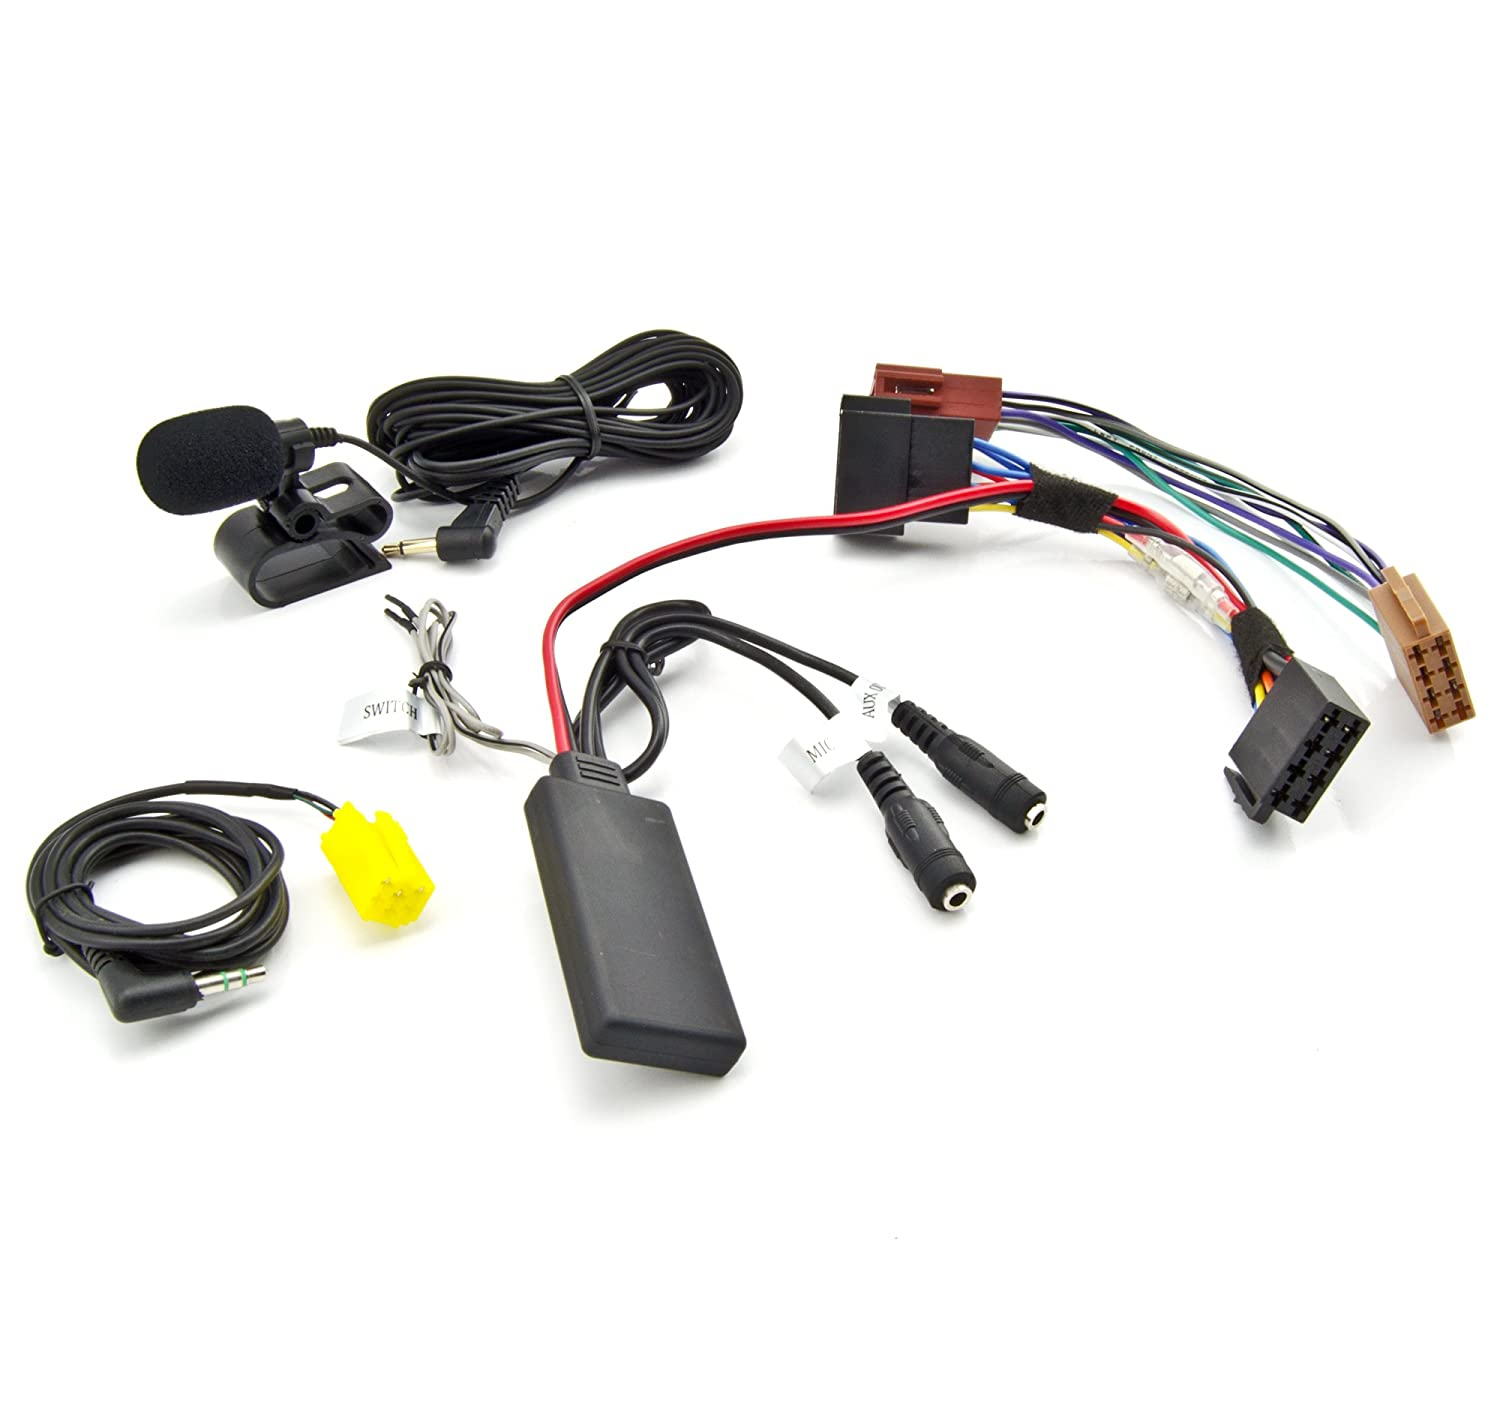 Bluetooth Aux Adaper für SMART Fortwo 451 ab 2007 MP3 Musik Streaming Spotify